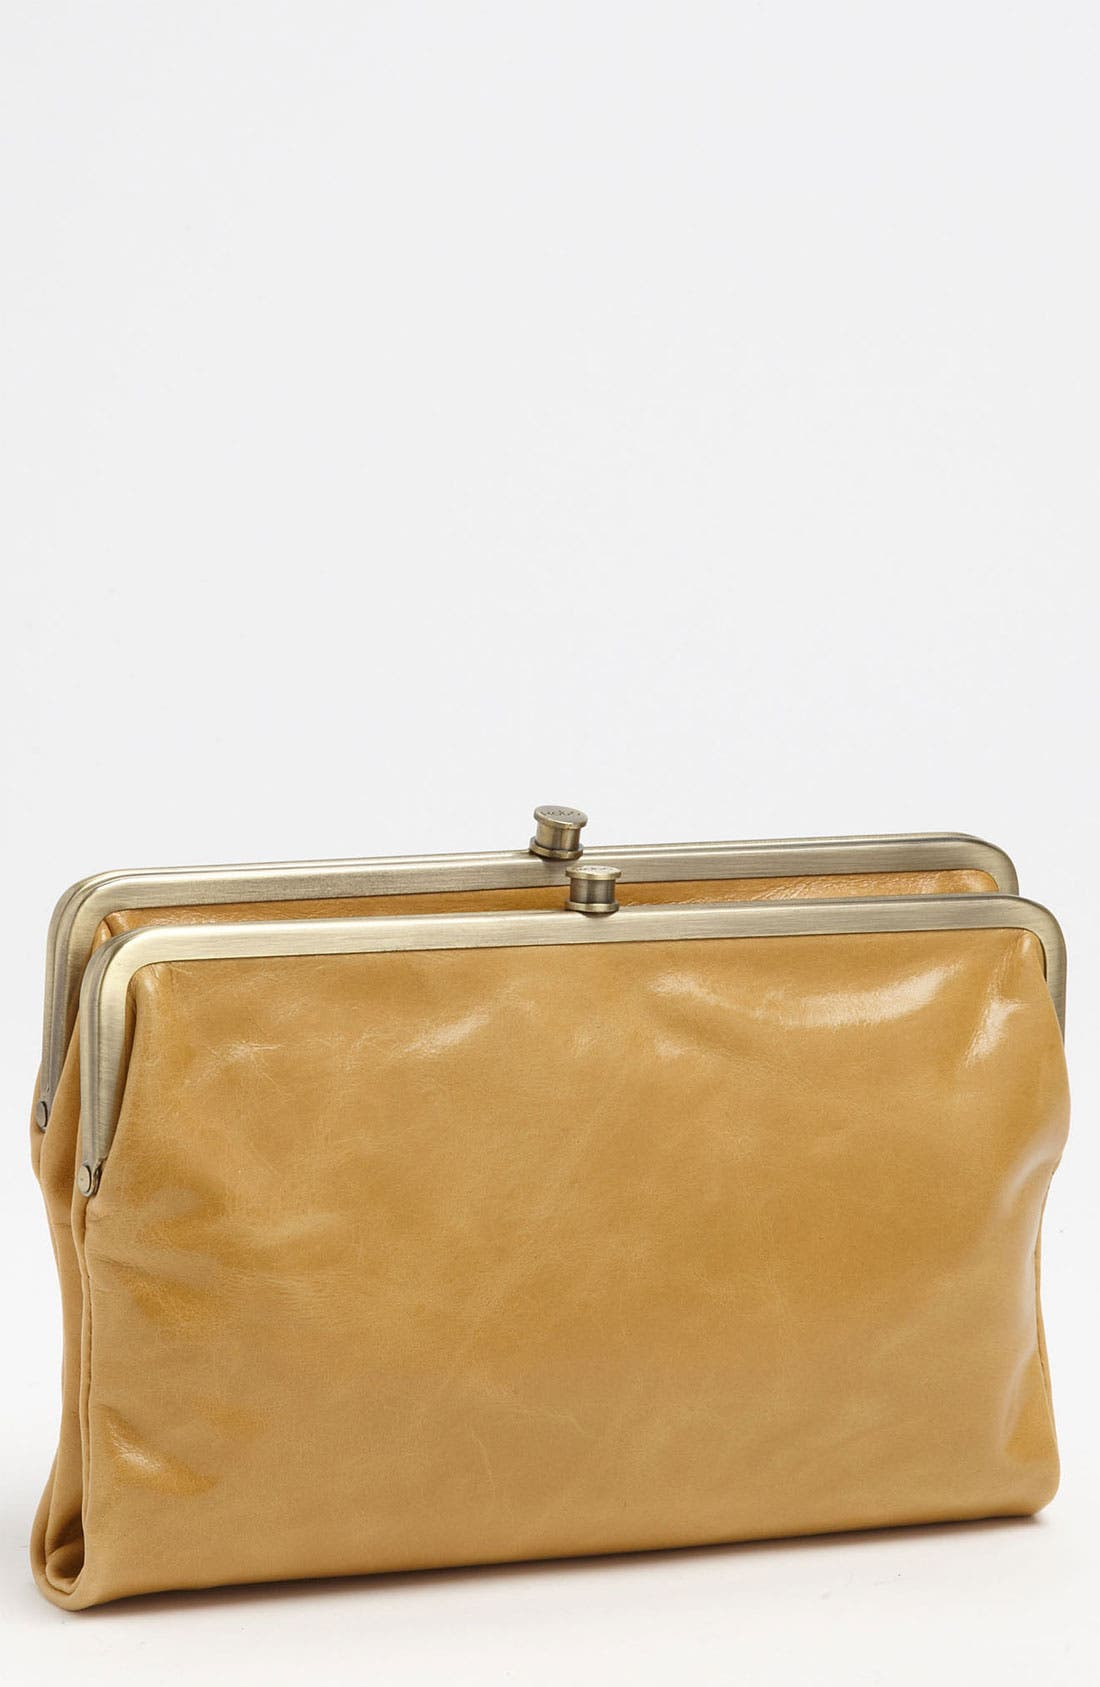 Main Image - Hobo 'Vintage Leanne' Leather Crossbody Bag